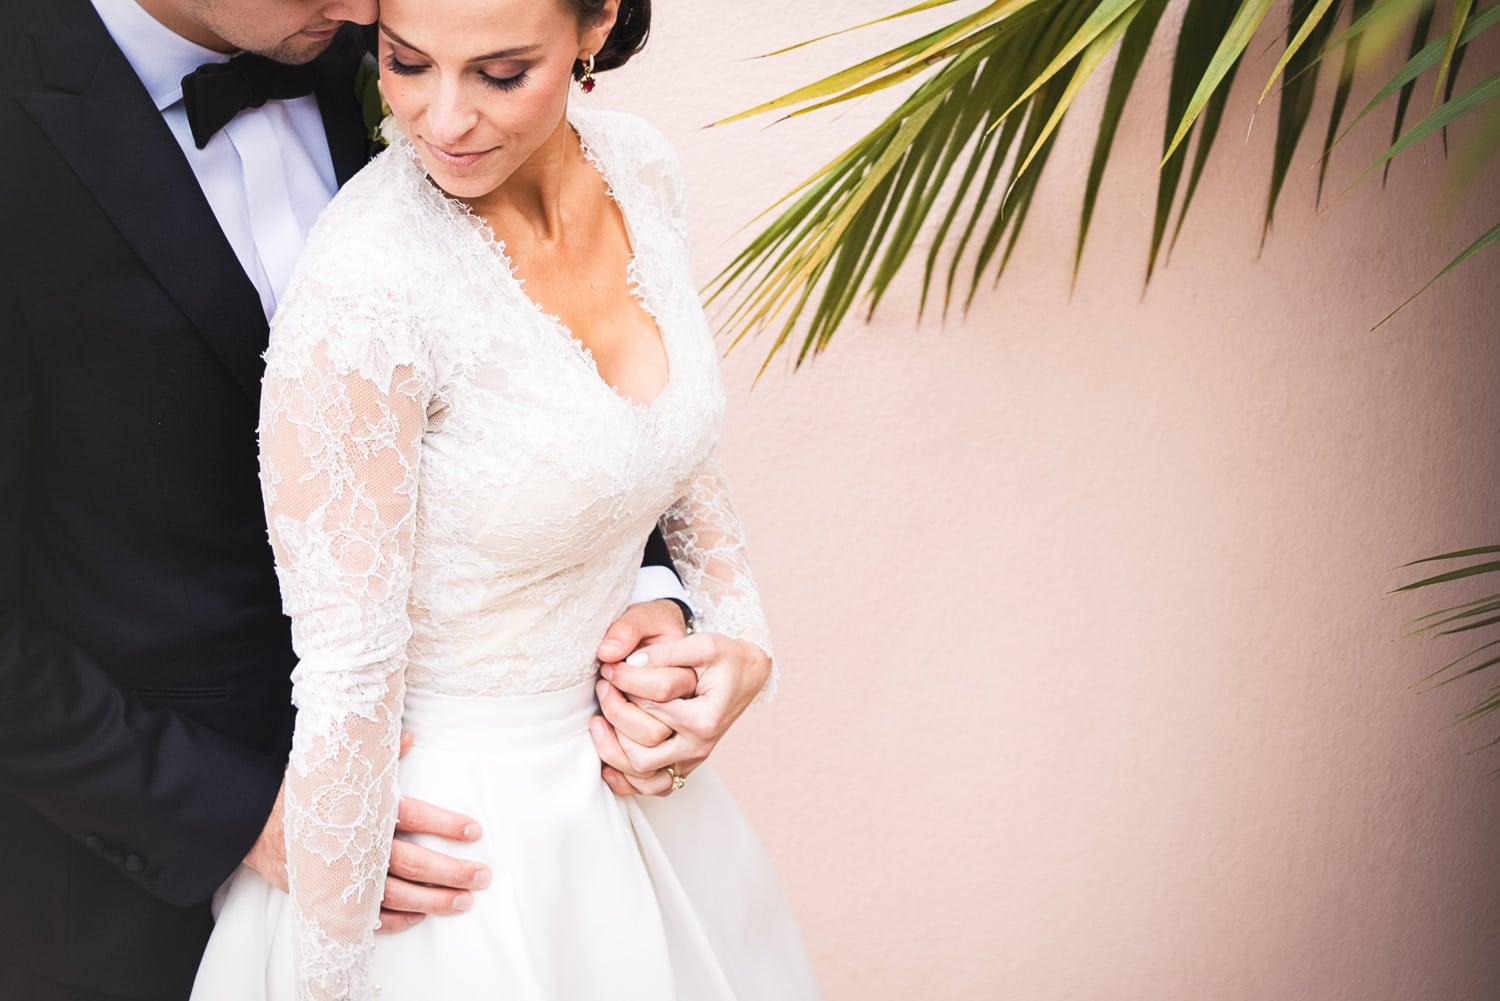 Modern Classic Bride and Groom at Hotel Bel-Air